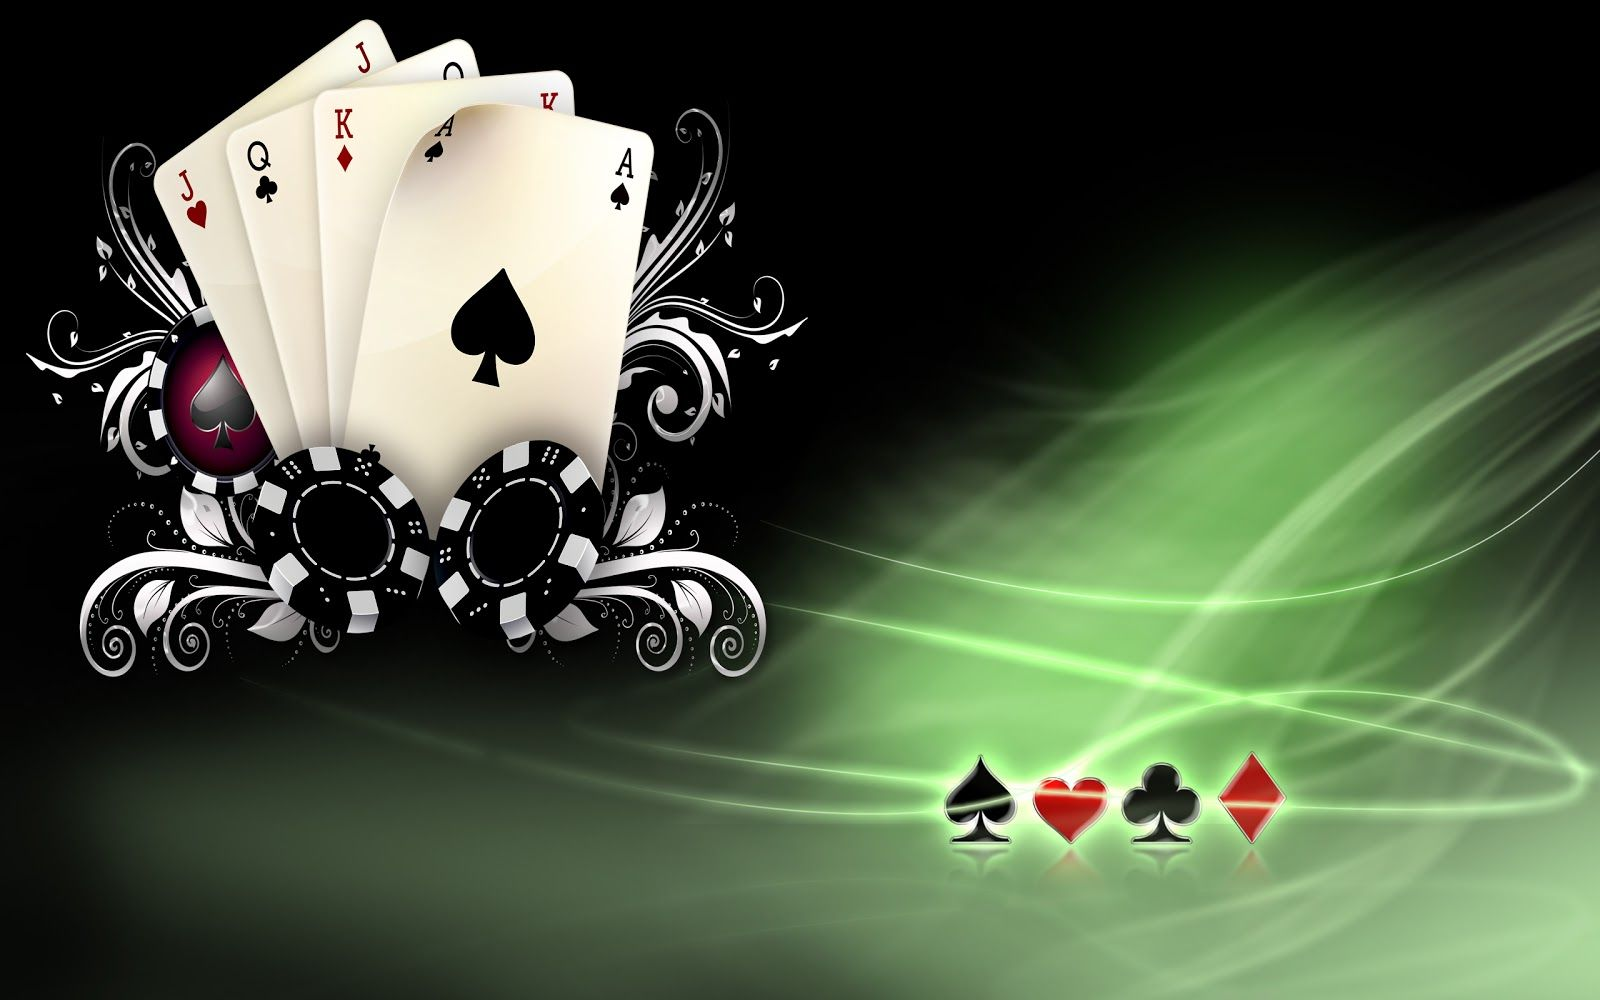 Poker Desktop Wallpaper | Poker, Casino theme parties, Casino theme